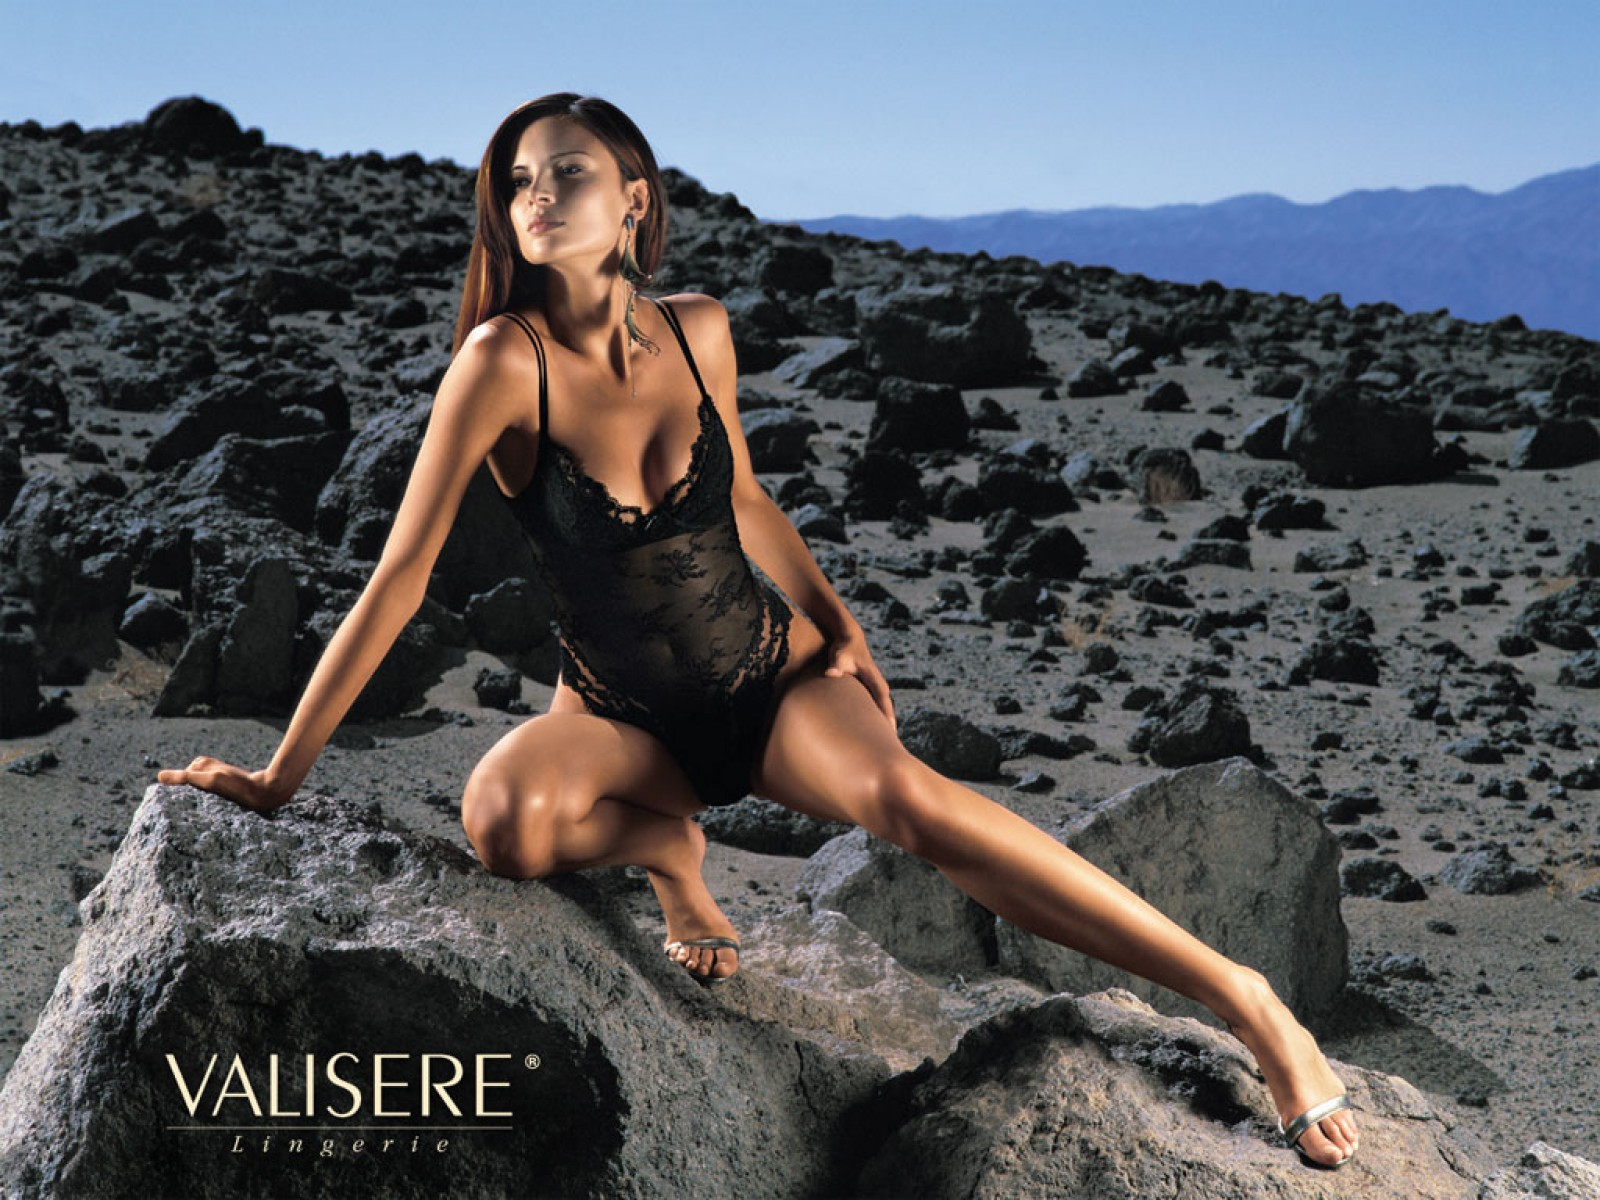 warez wallpapers hd valisere lingerie wallpapers 10